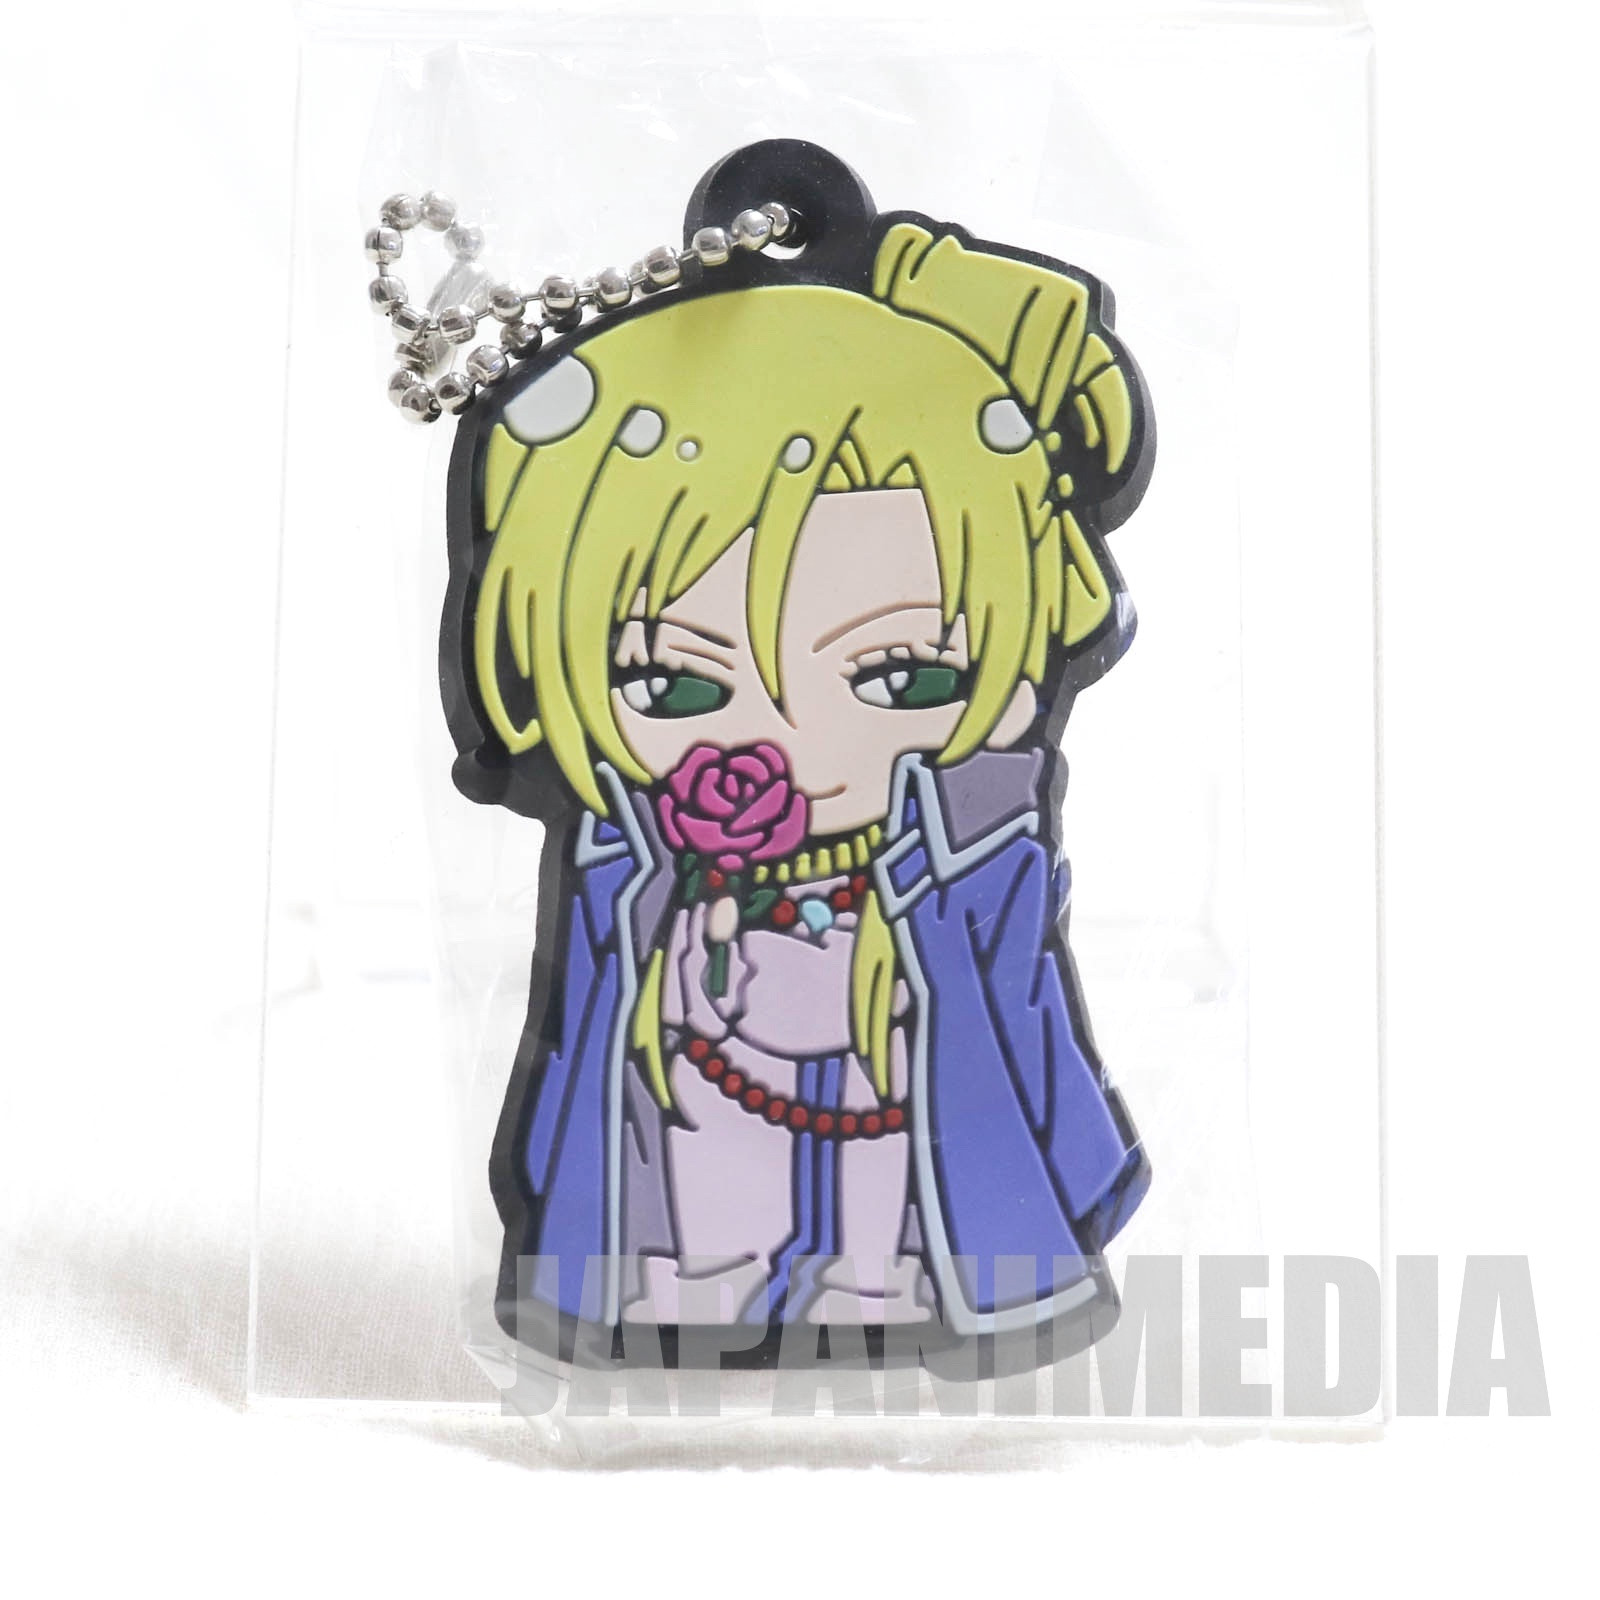 Kamisama Kiss Ookuninushi Rubber Mascot Ball keychain Collection JAPAN ANIME